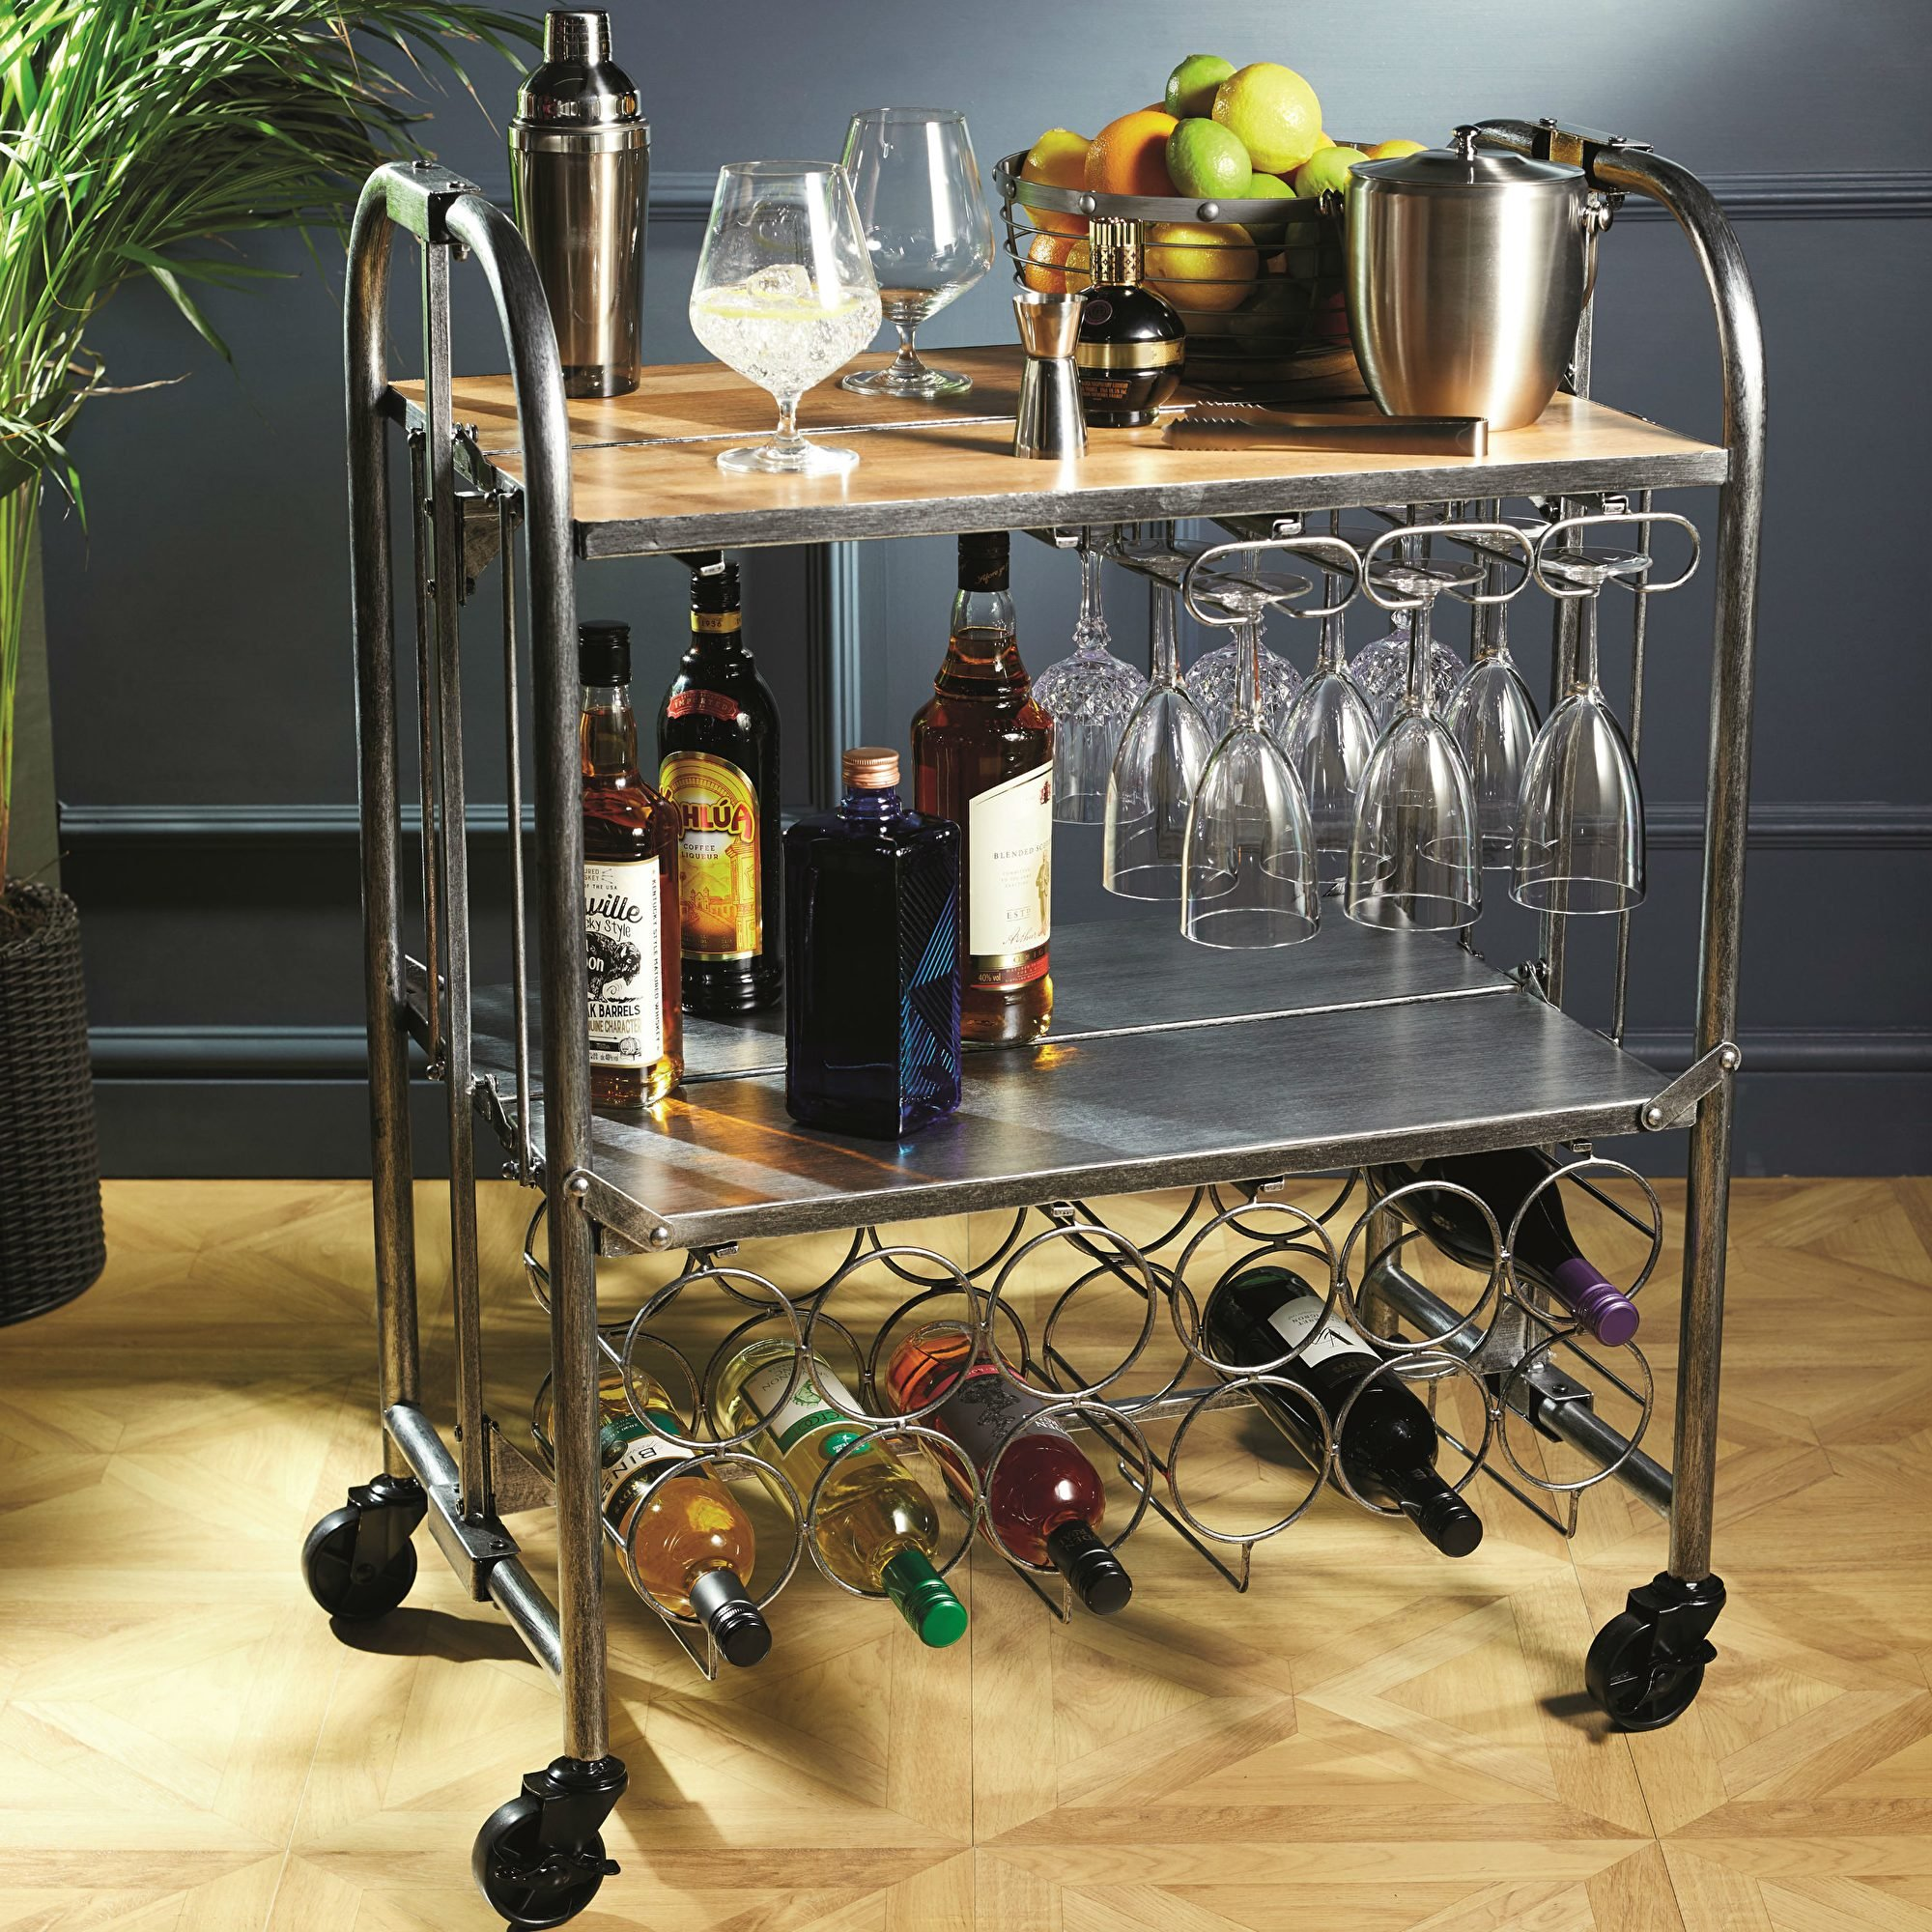 Barcraft Folding Industrial Look Carbon Steel Home Bar